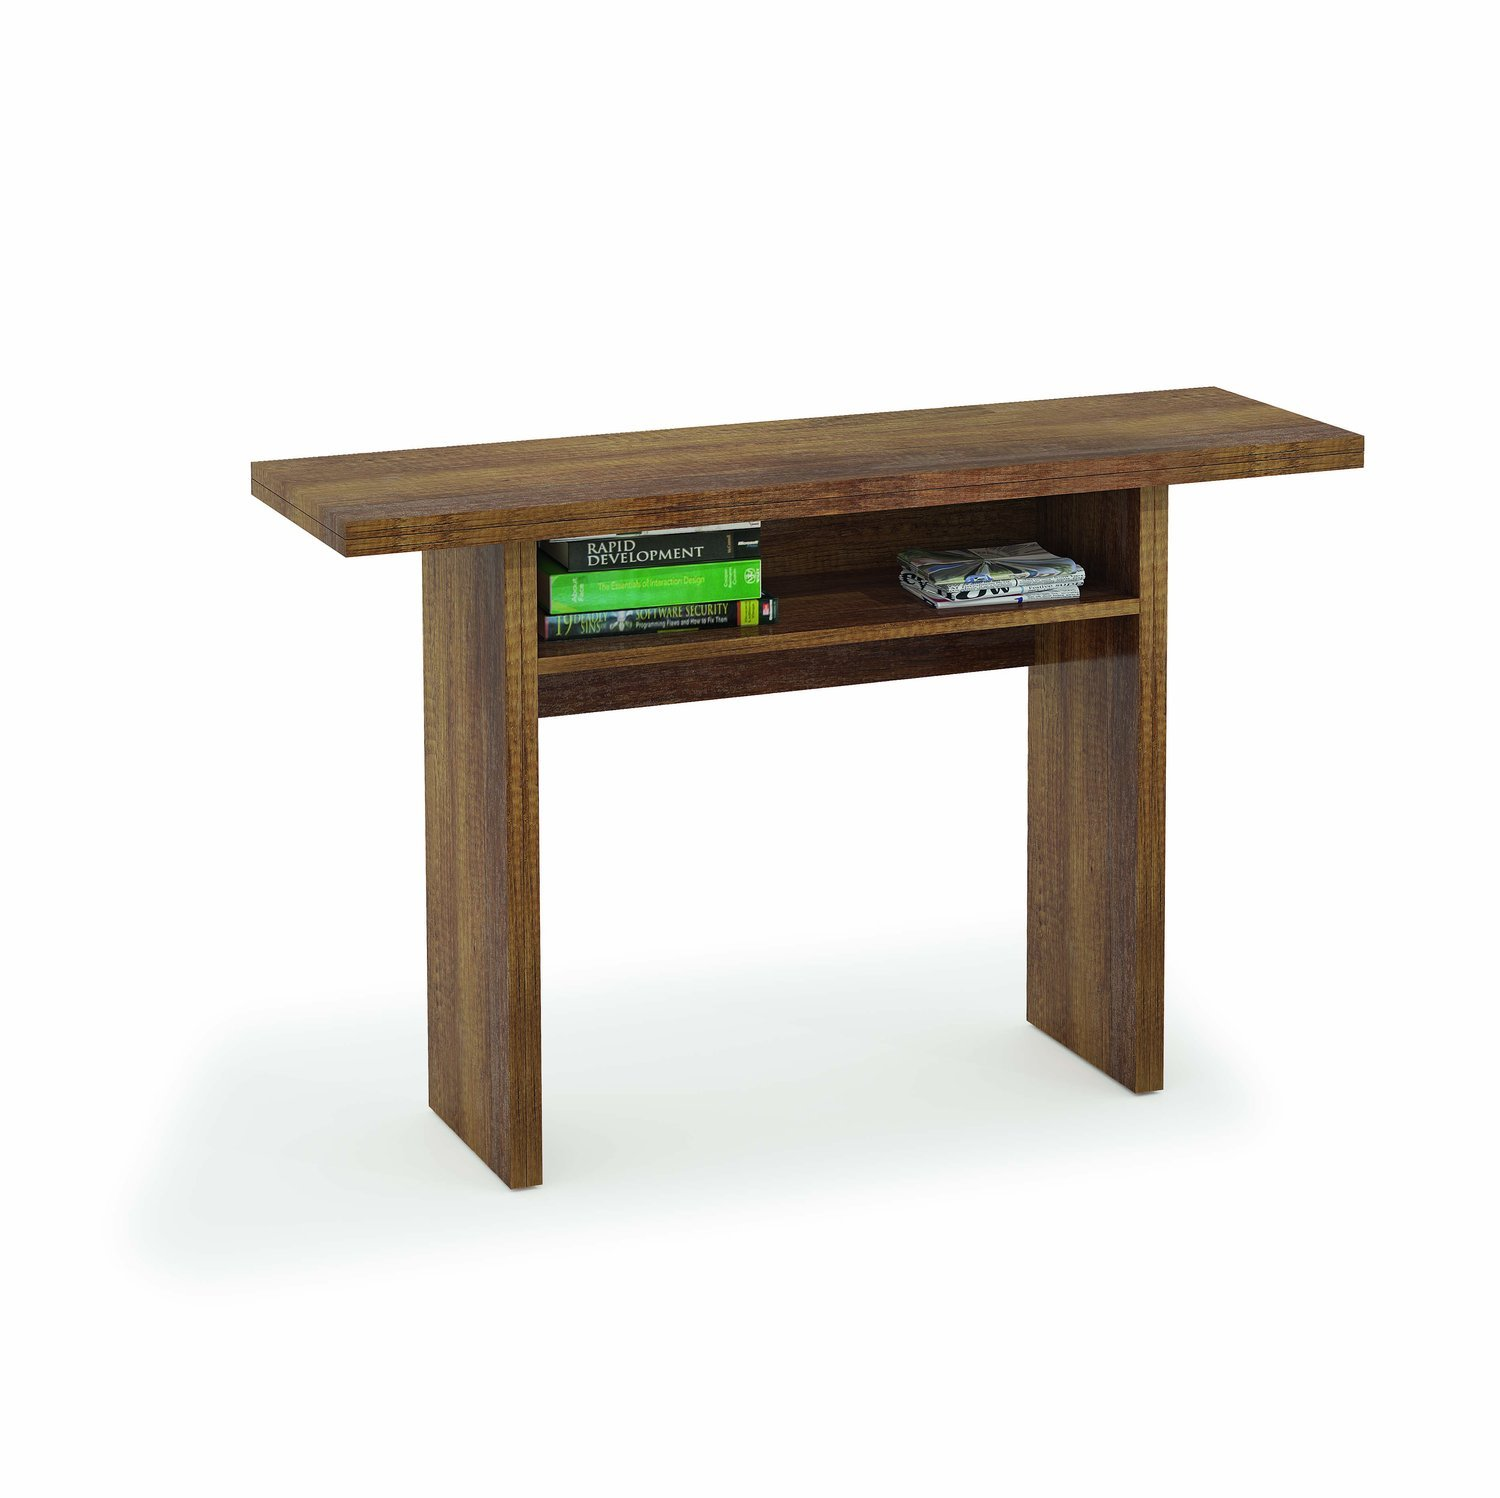 BRAVICH Oak Effect Modern 2 In 1 Extendable Dining Table 100% Made In Italy Console Extending Tables Multi-Function Kitchen (Oak Effect) F01020102003